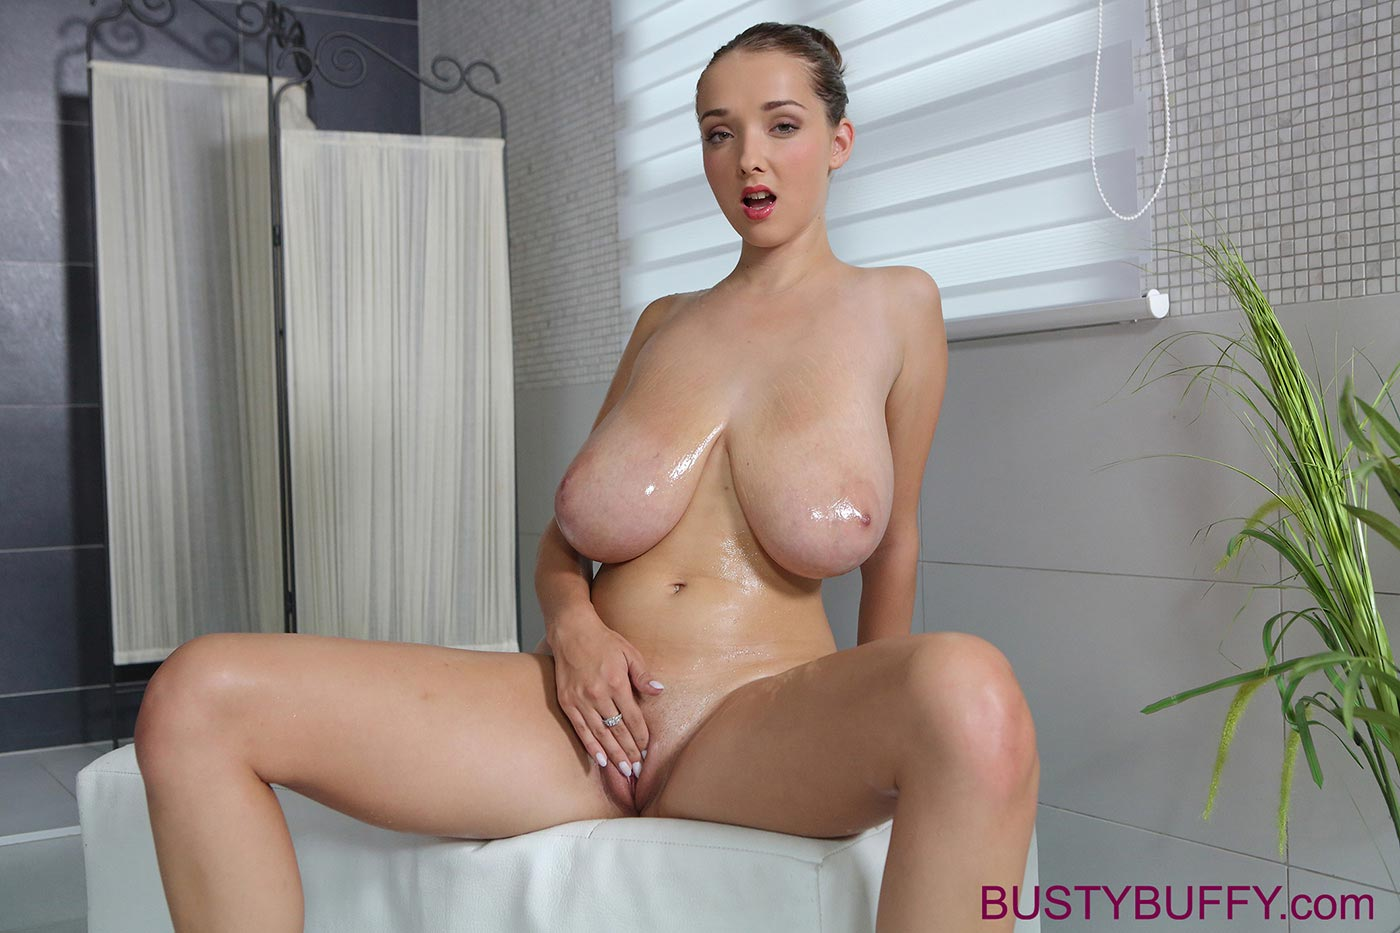 wet-and-oily-busty-buffy-massaging-her-big-naturals16